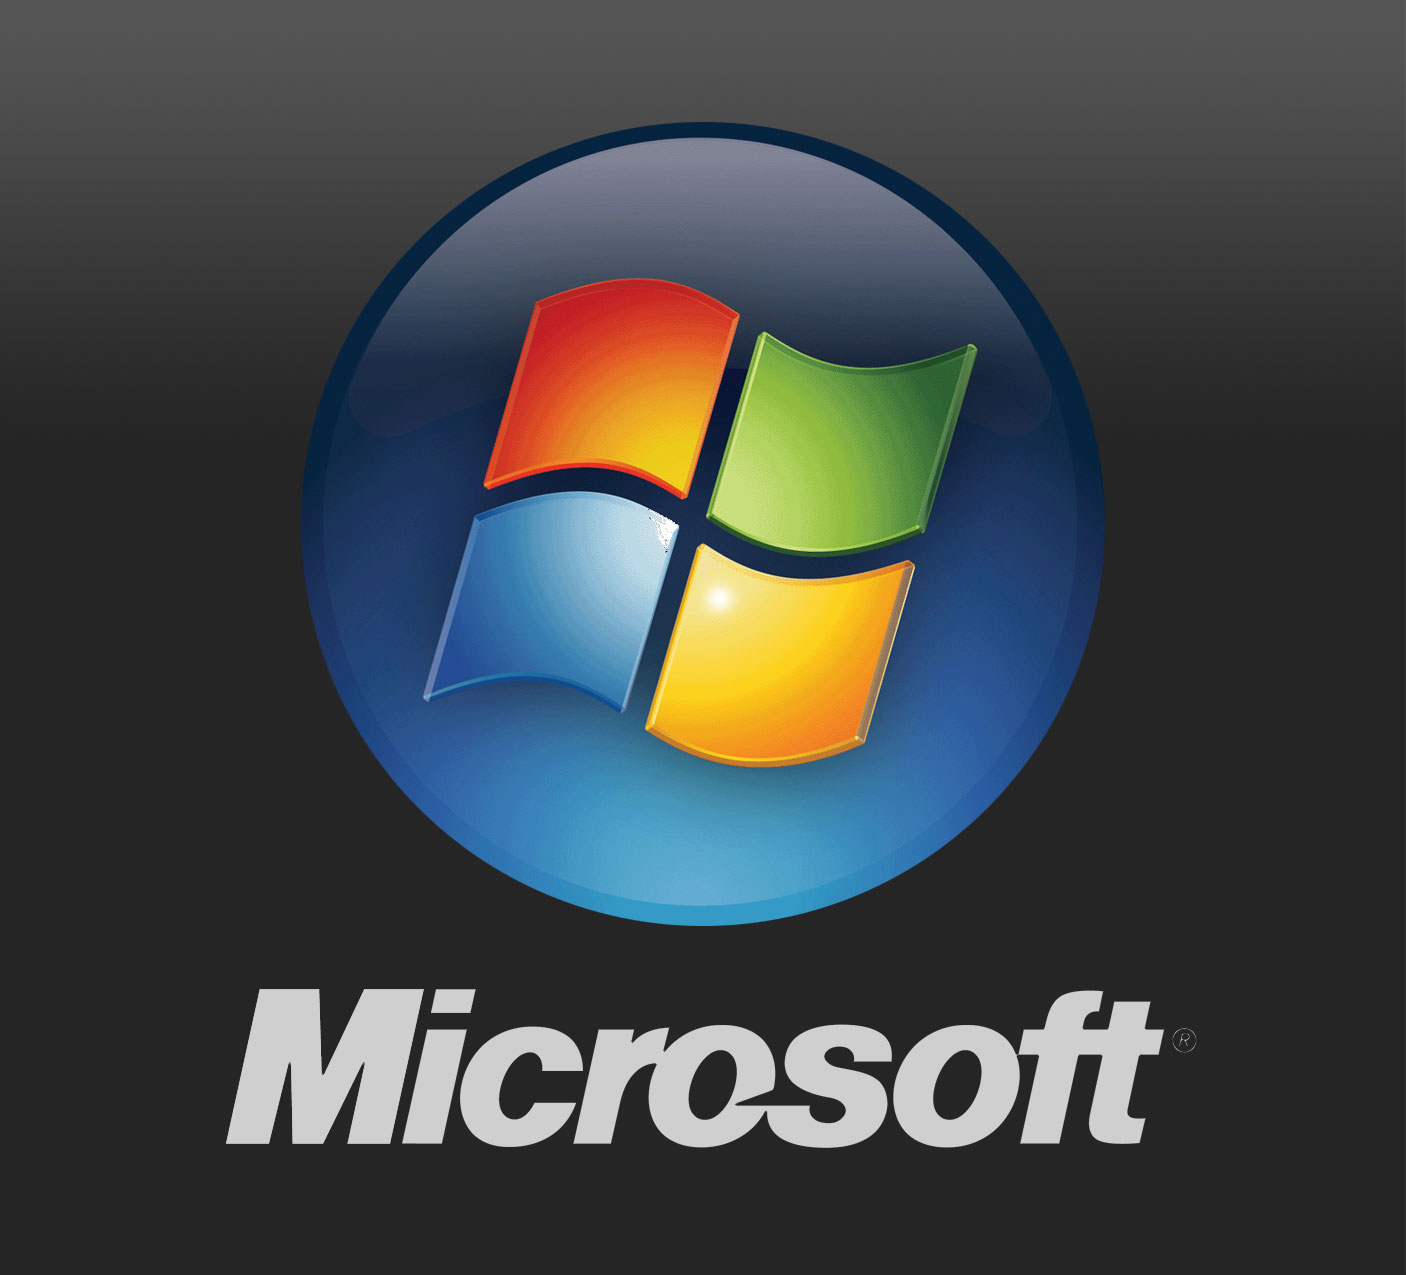 Microsoft Invests $75m in Nigeria, South Africa, Kenya, Others